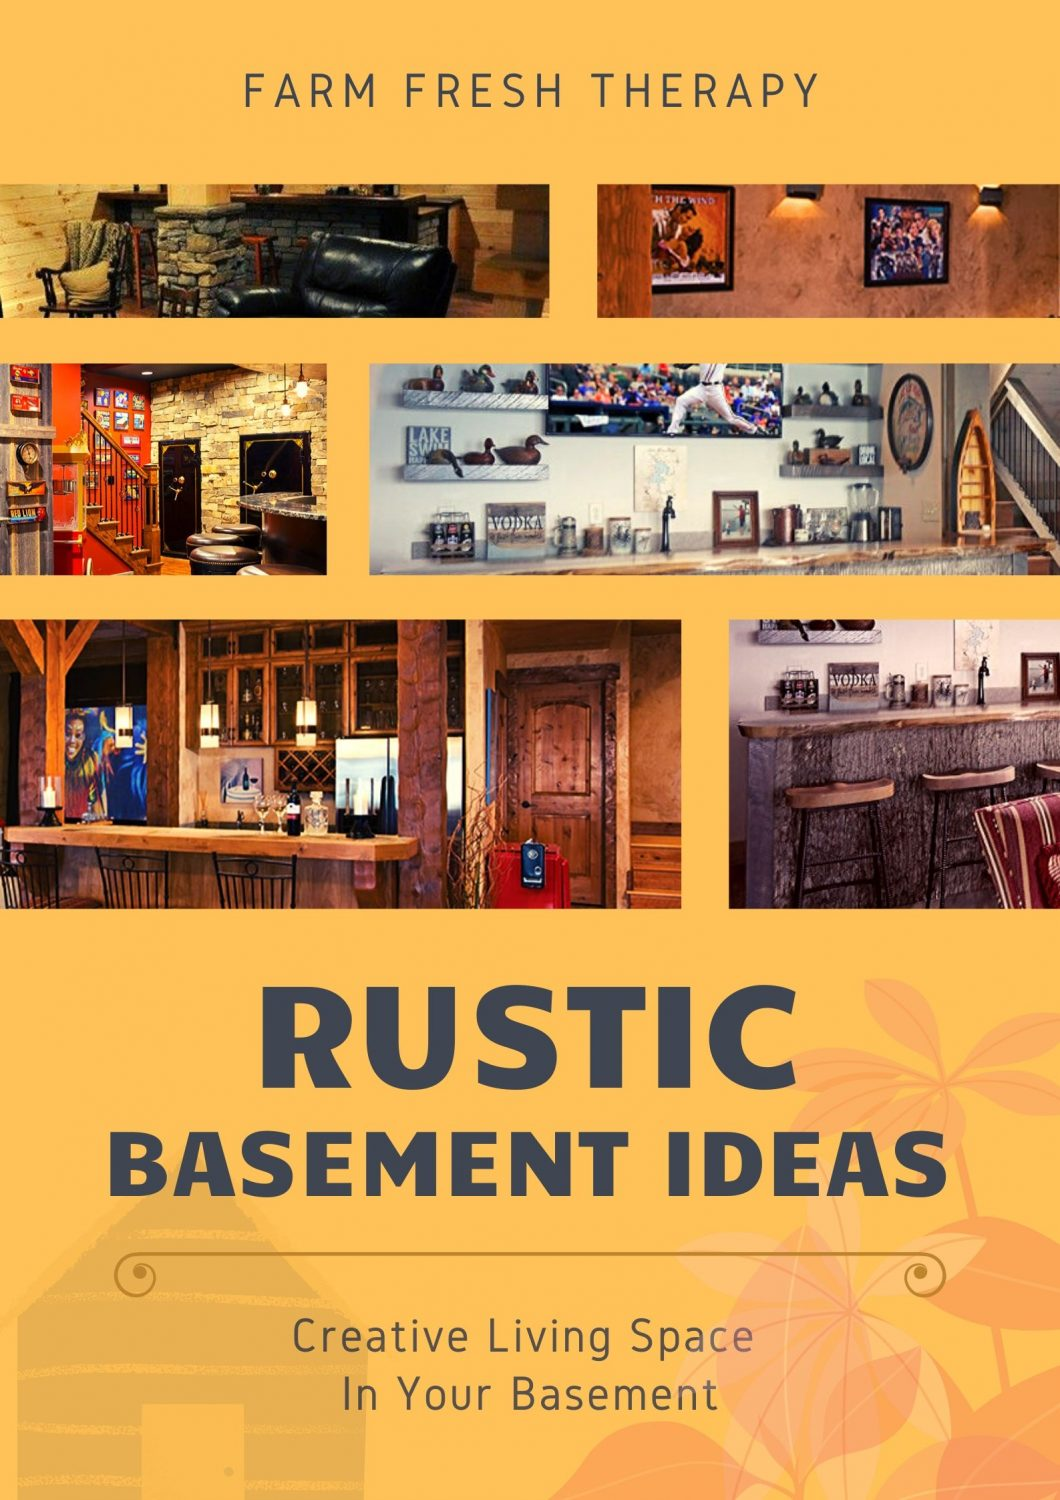 Rustic Basement Ideas